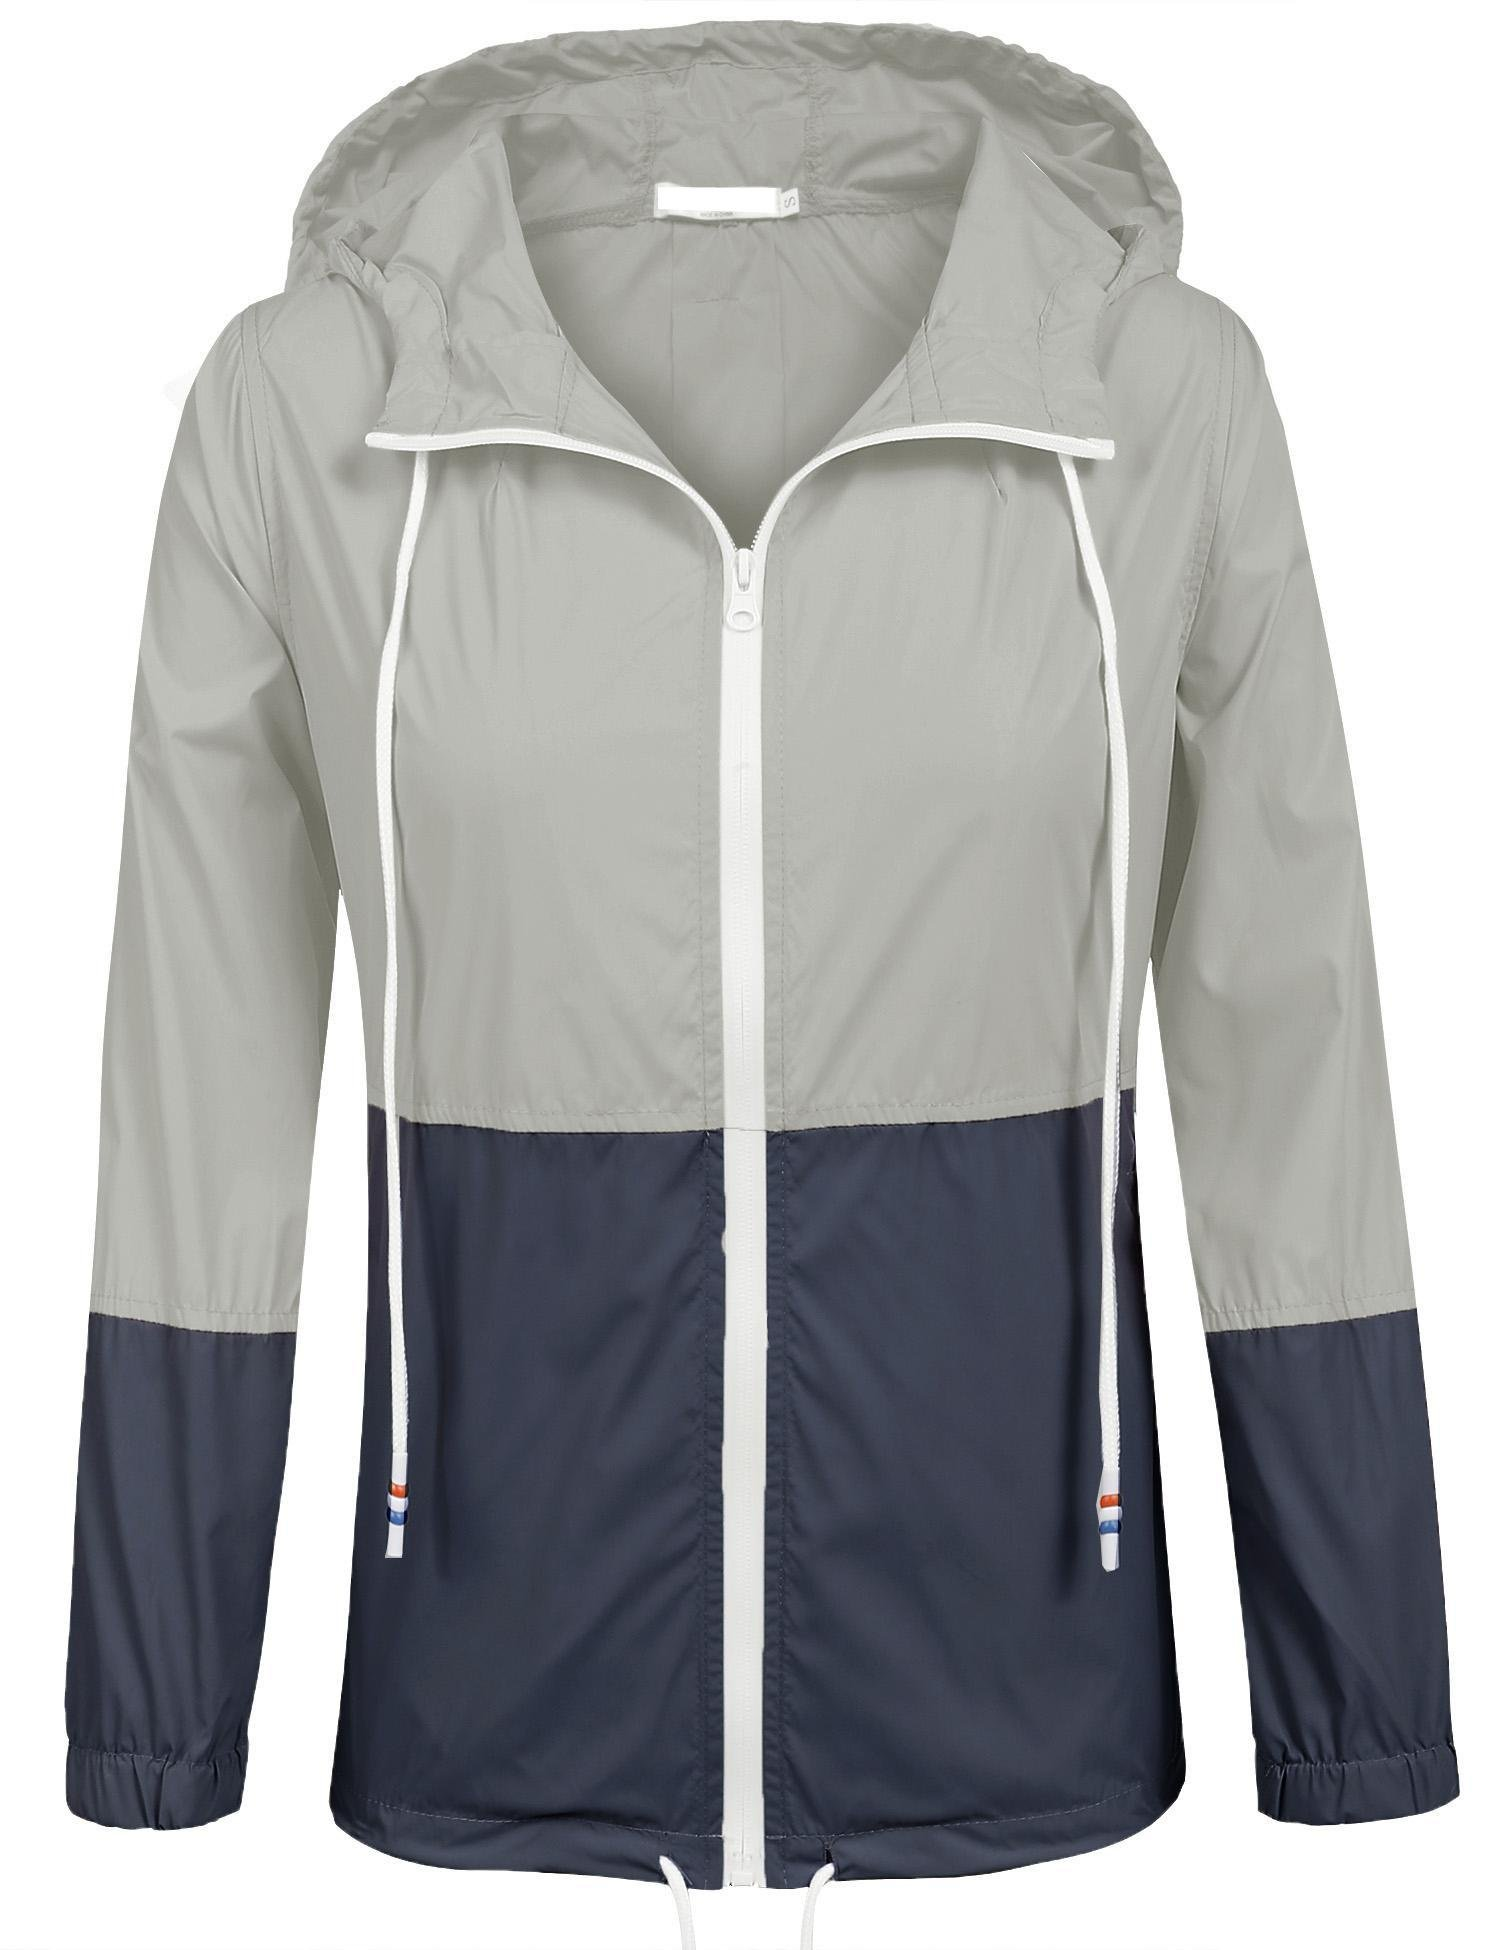 SoTeer Womens Rainwear Active Outdoor Hooded Cycling Packable and Lightweight Jacket (Gray/Navy S)